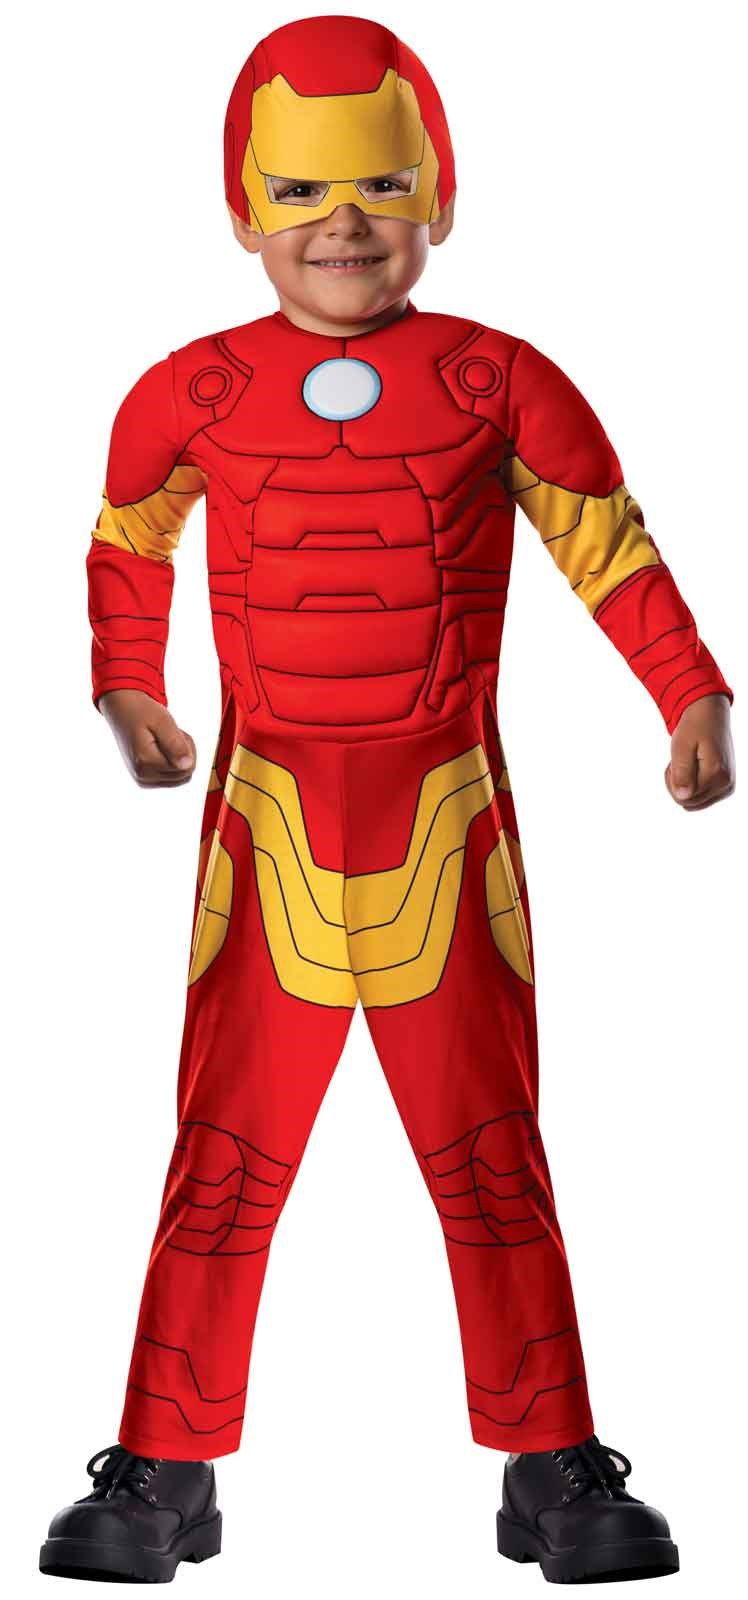 Avengers Assemble Iron Man Toddler Boy Costume Toddler (2-4)